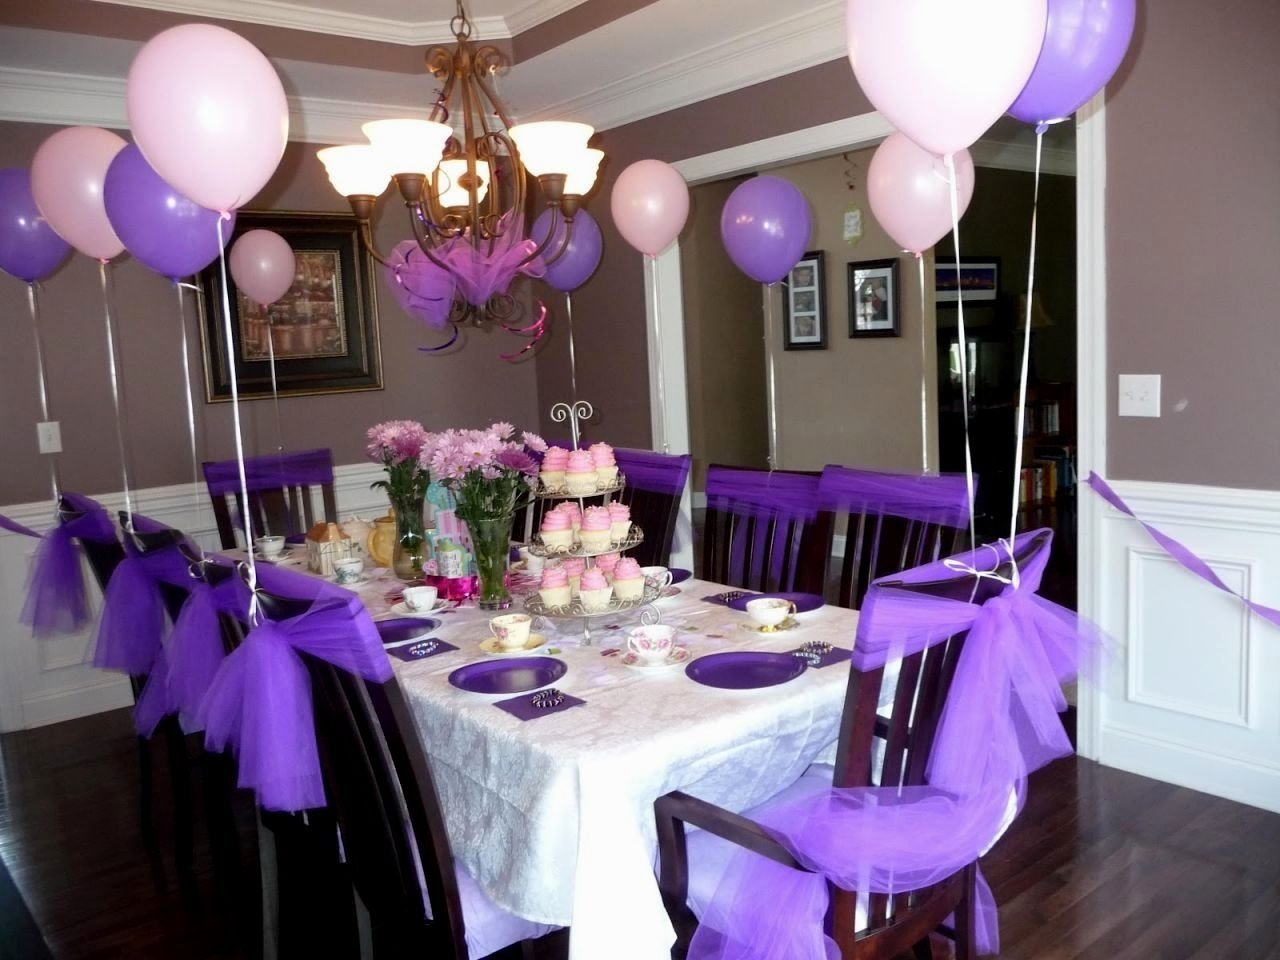 10 Best Birthday Party Decorations Ideas For Adults purple party ideas for adults decorating of party 1 2020